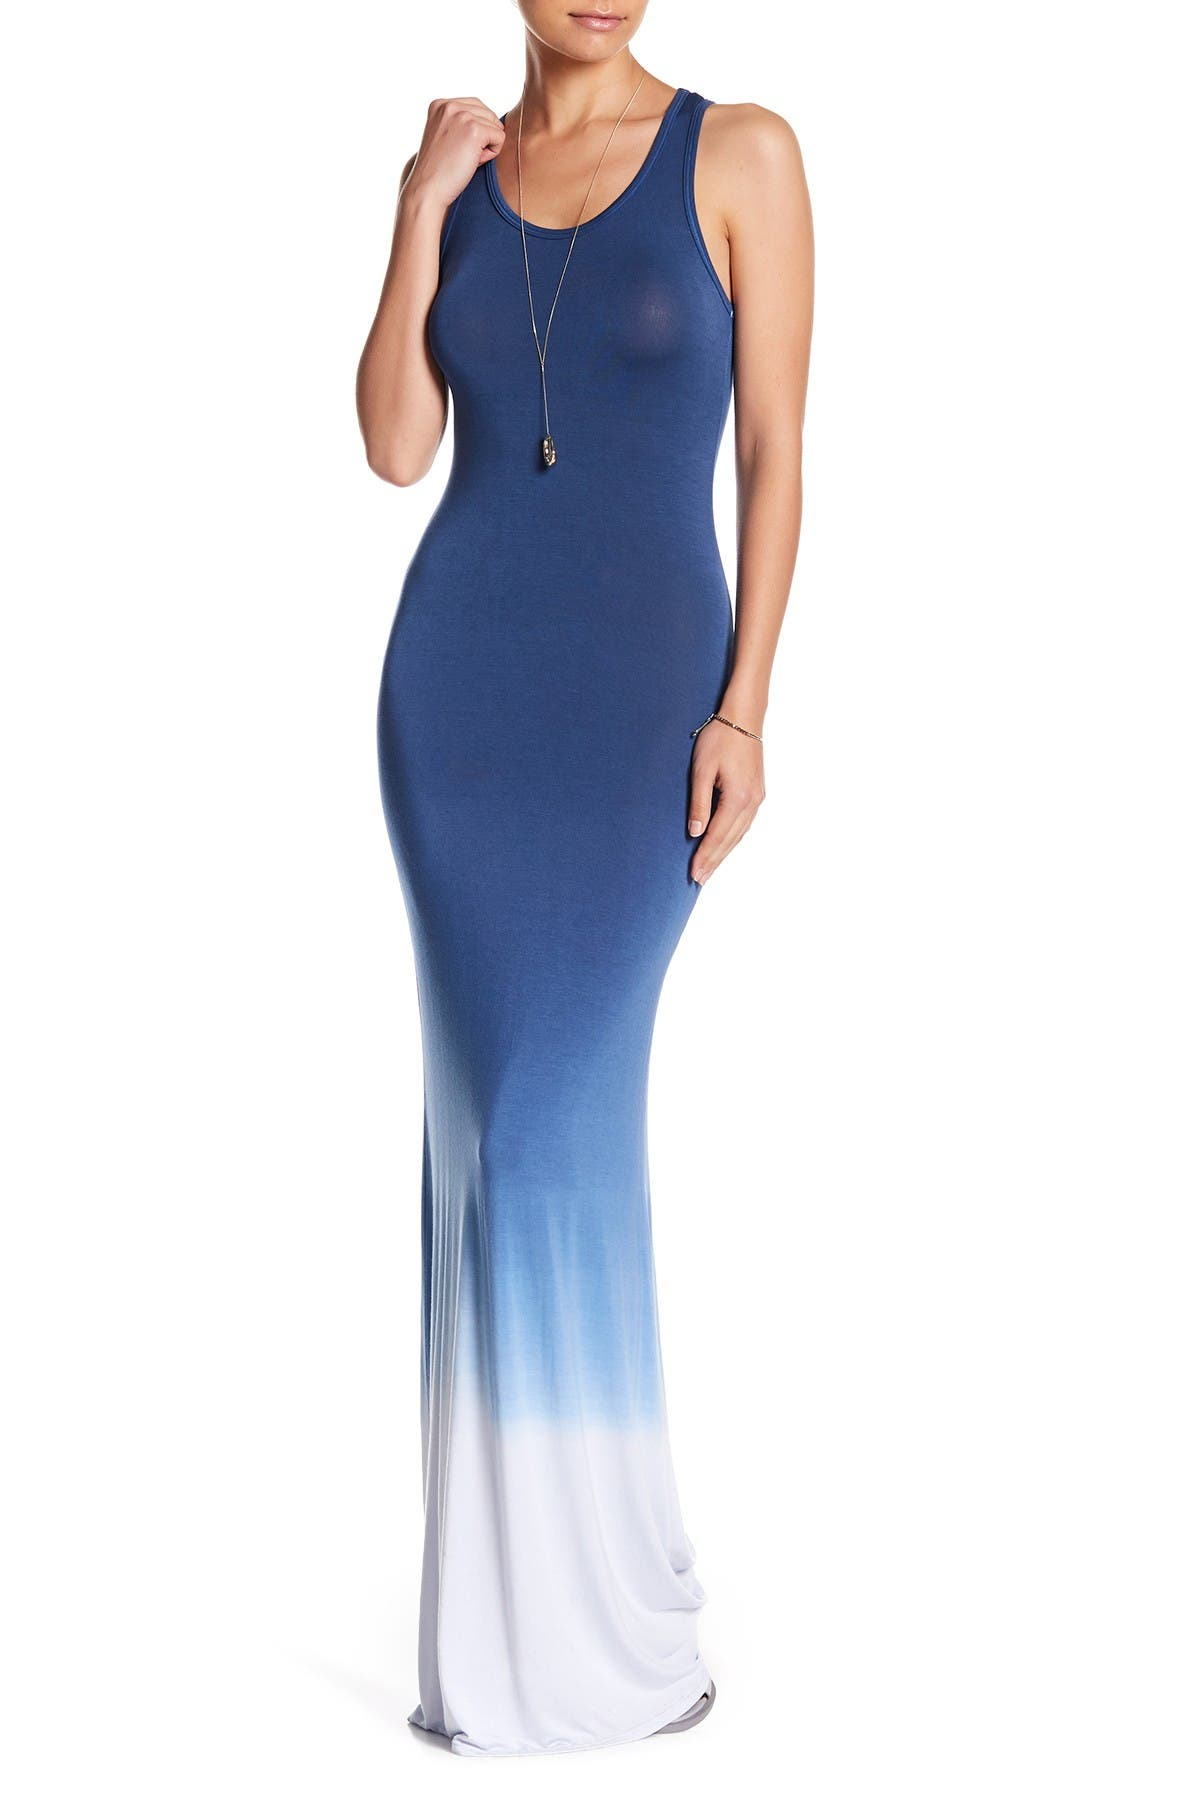 Image of Go Couture Racerback Tie Dye Maxi Dress